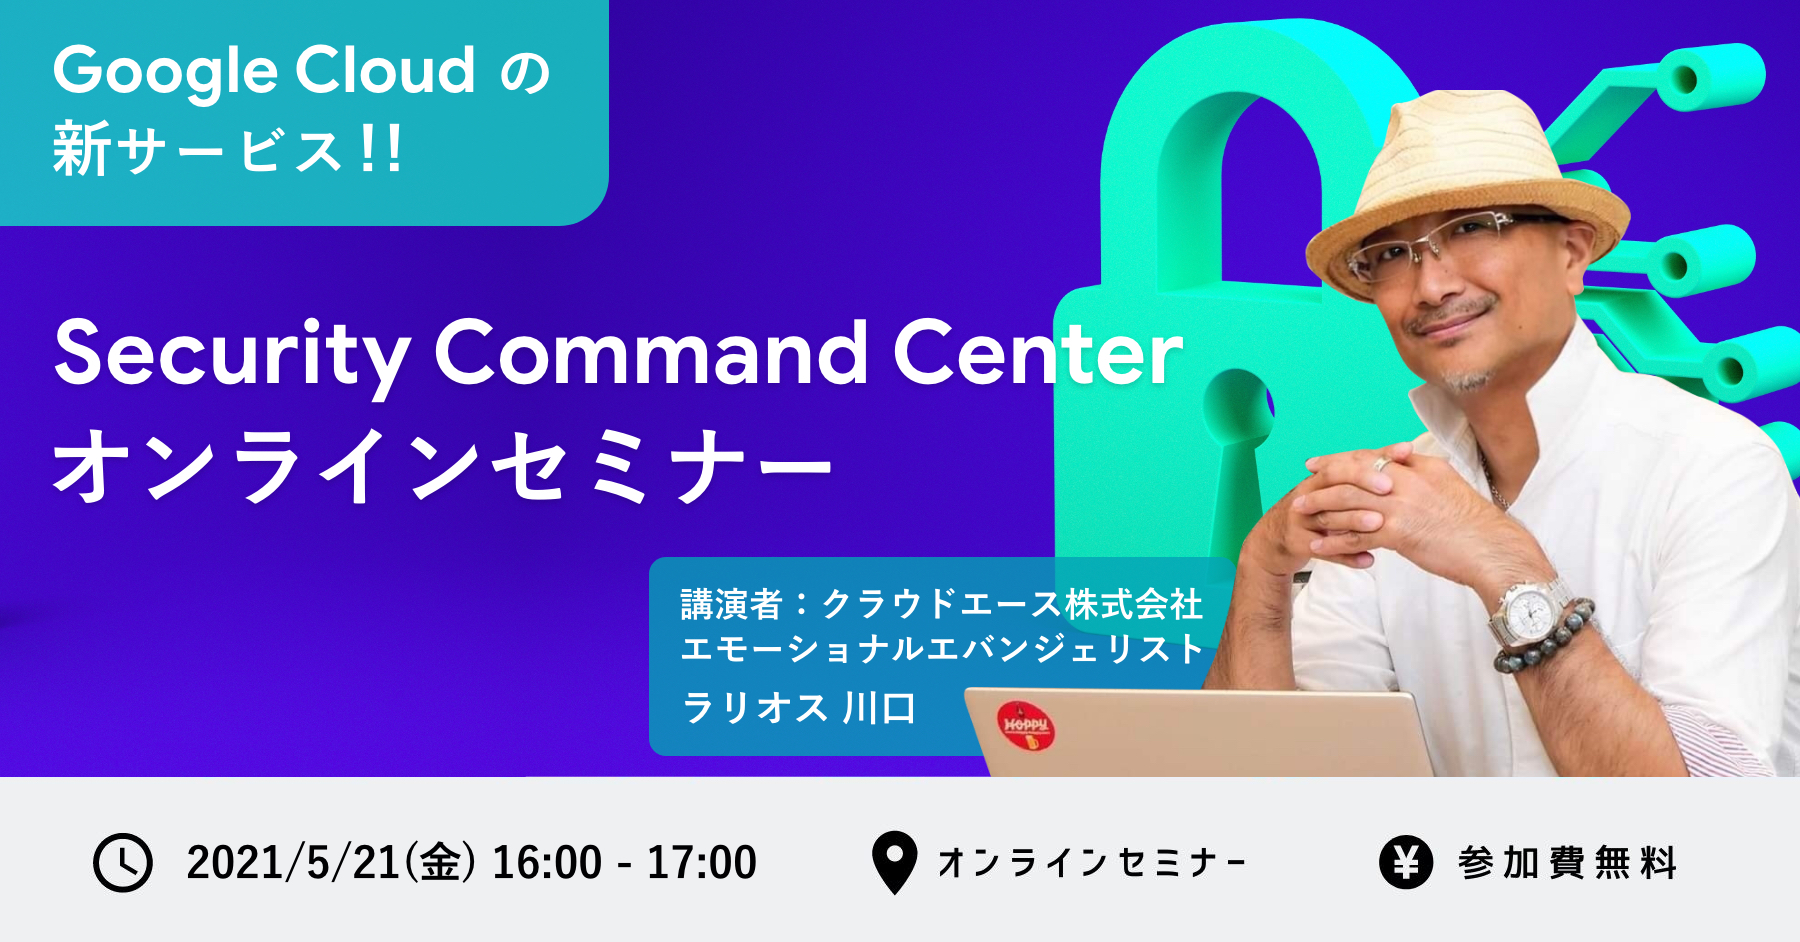 Google Cloud の新サービス − Security Command Center